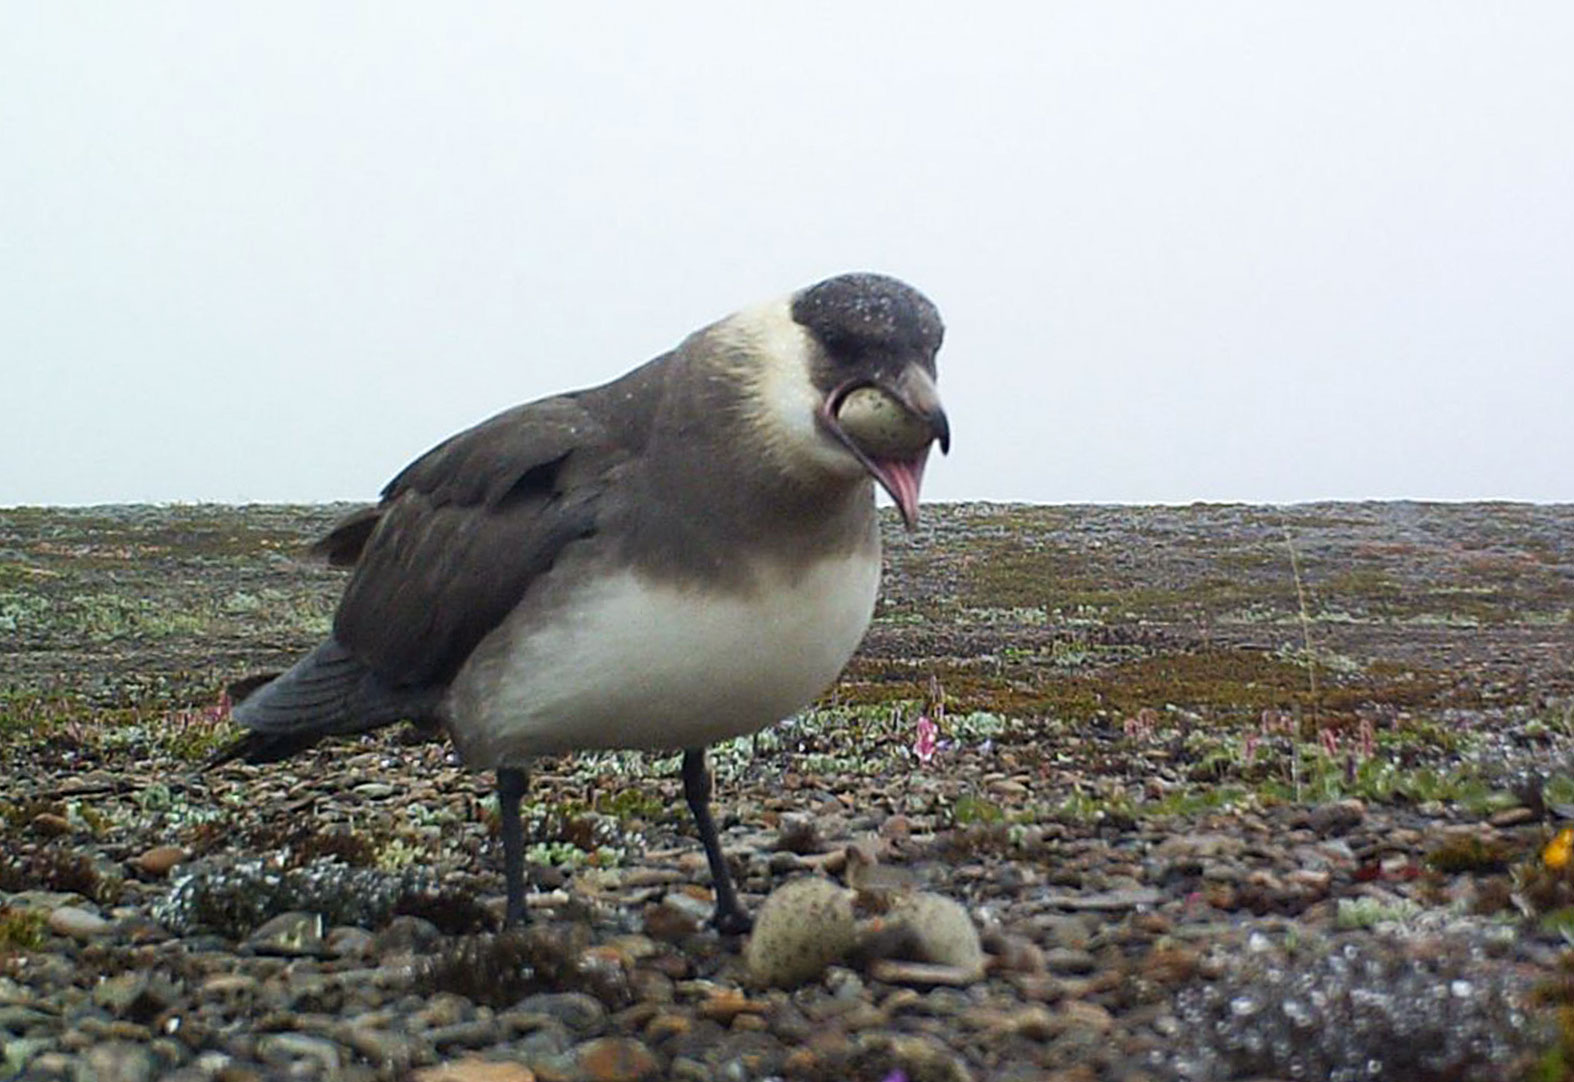 A Parasitic Jaeger (also known as Arctic Skua) swallows Common Ringed Plover eggs. True to its name, the seabird mostly subsists on food stolen from other birds. Pavel Tomkovich/BirdsRussia